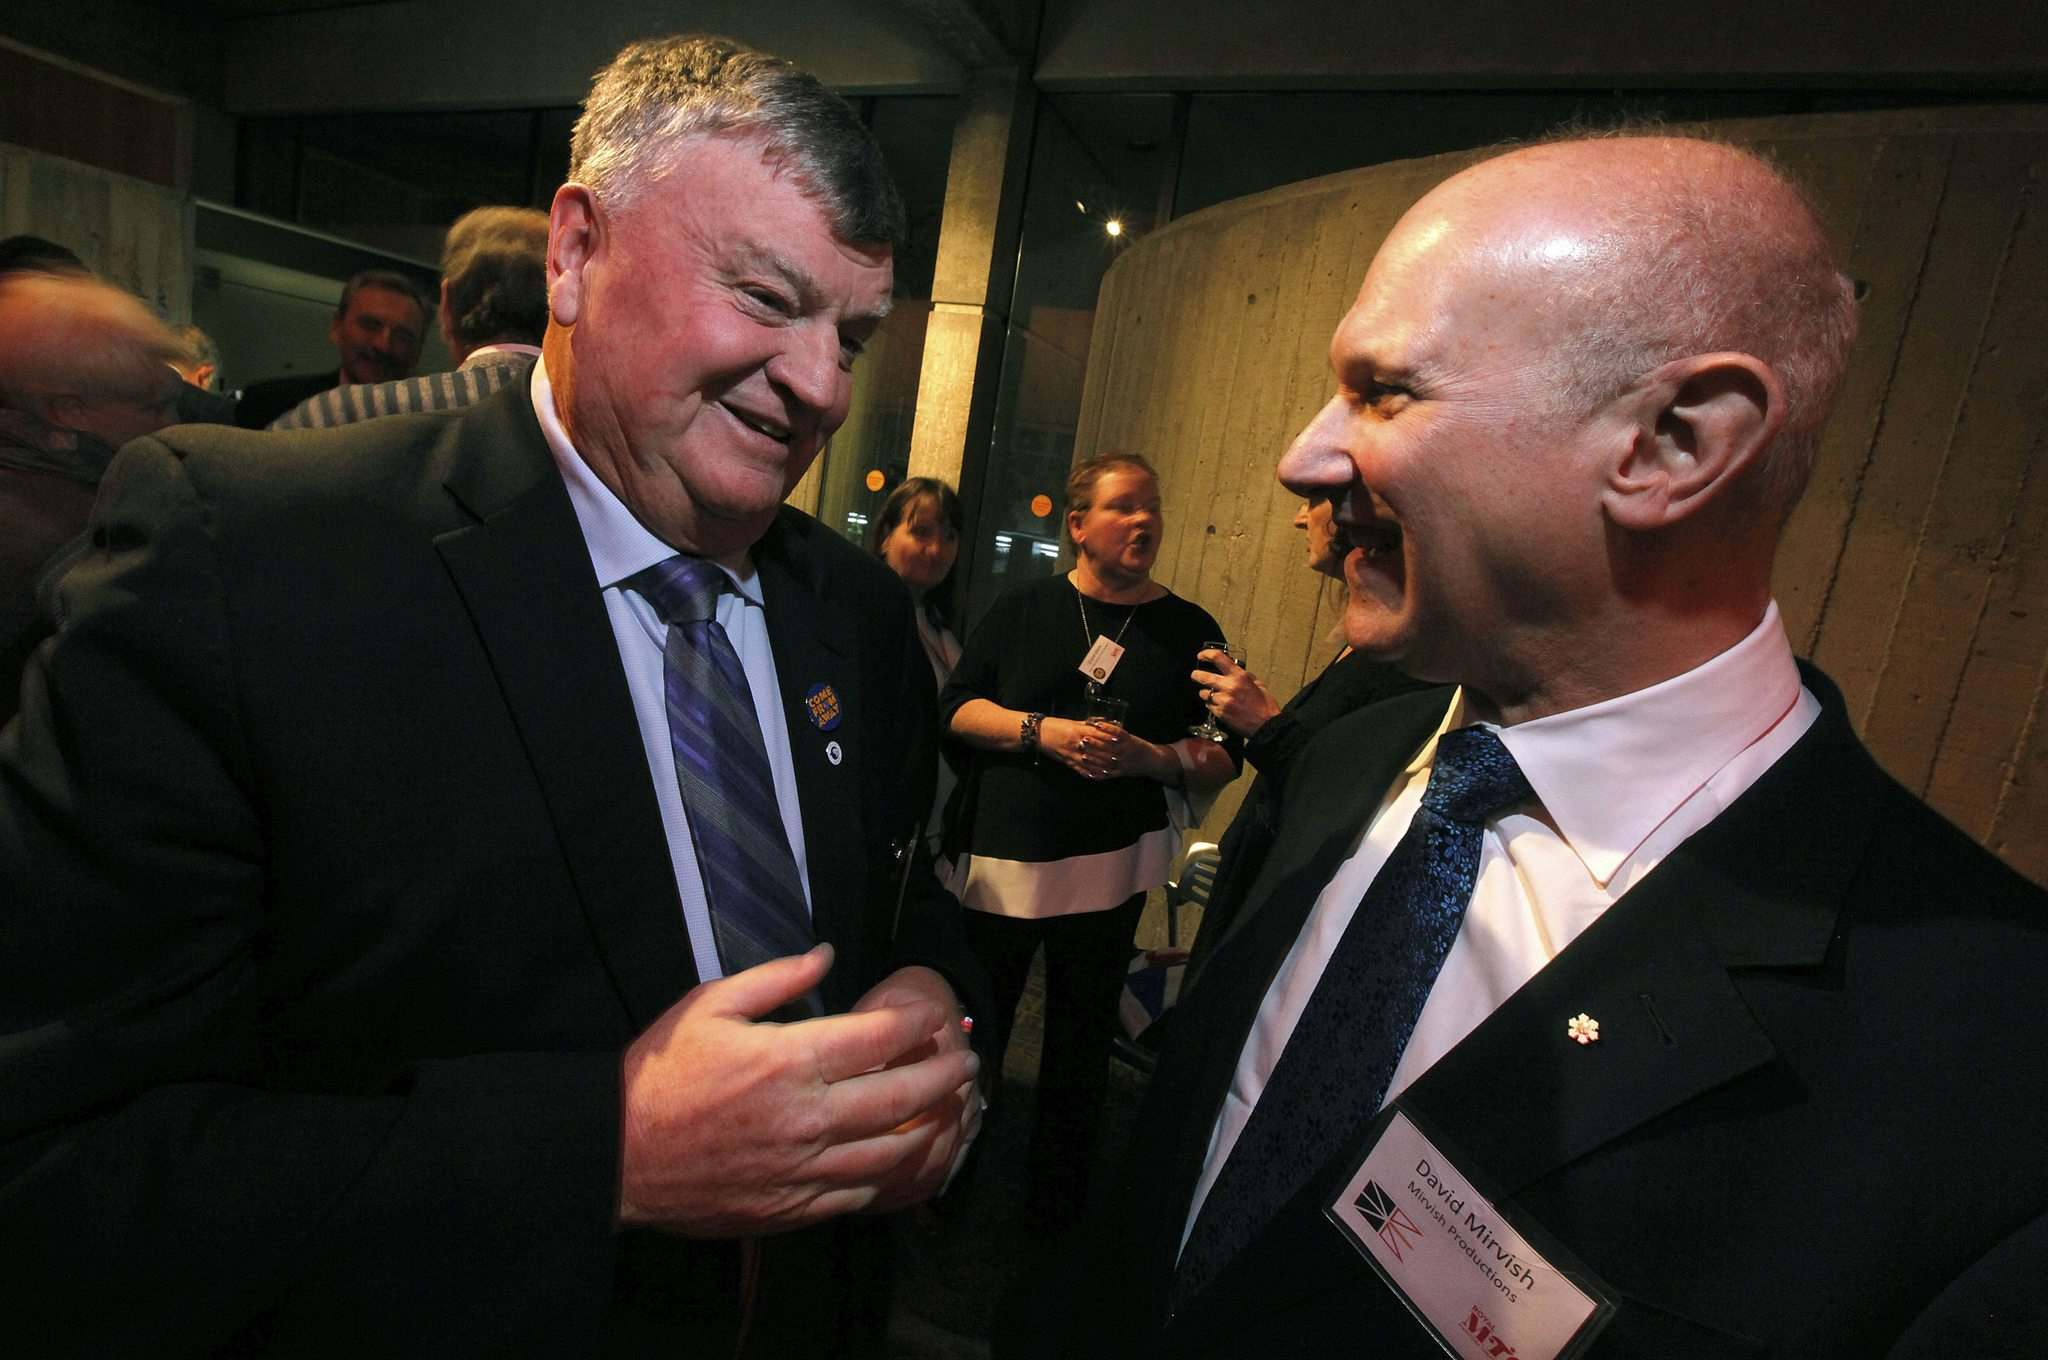 PHIL HOSSACK / Winnipeg Free Press</p><p>Claude Elliott (left), who was mayor of Gander, N.L., during 9/11, chats with theatre impresario David Mirvish at the opening of Come From Away.</p></p>